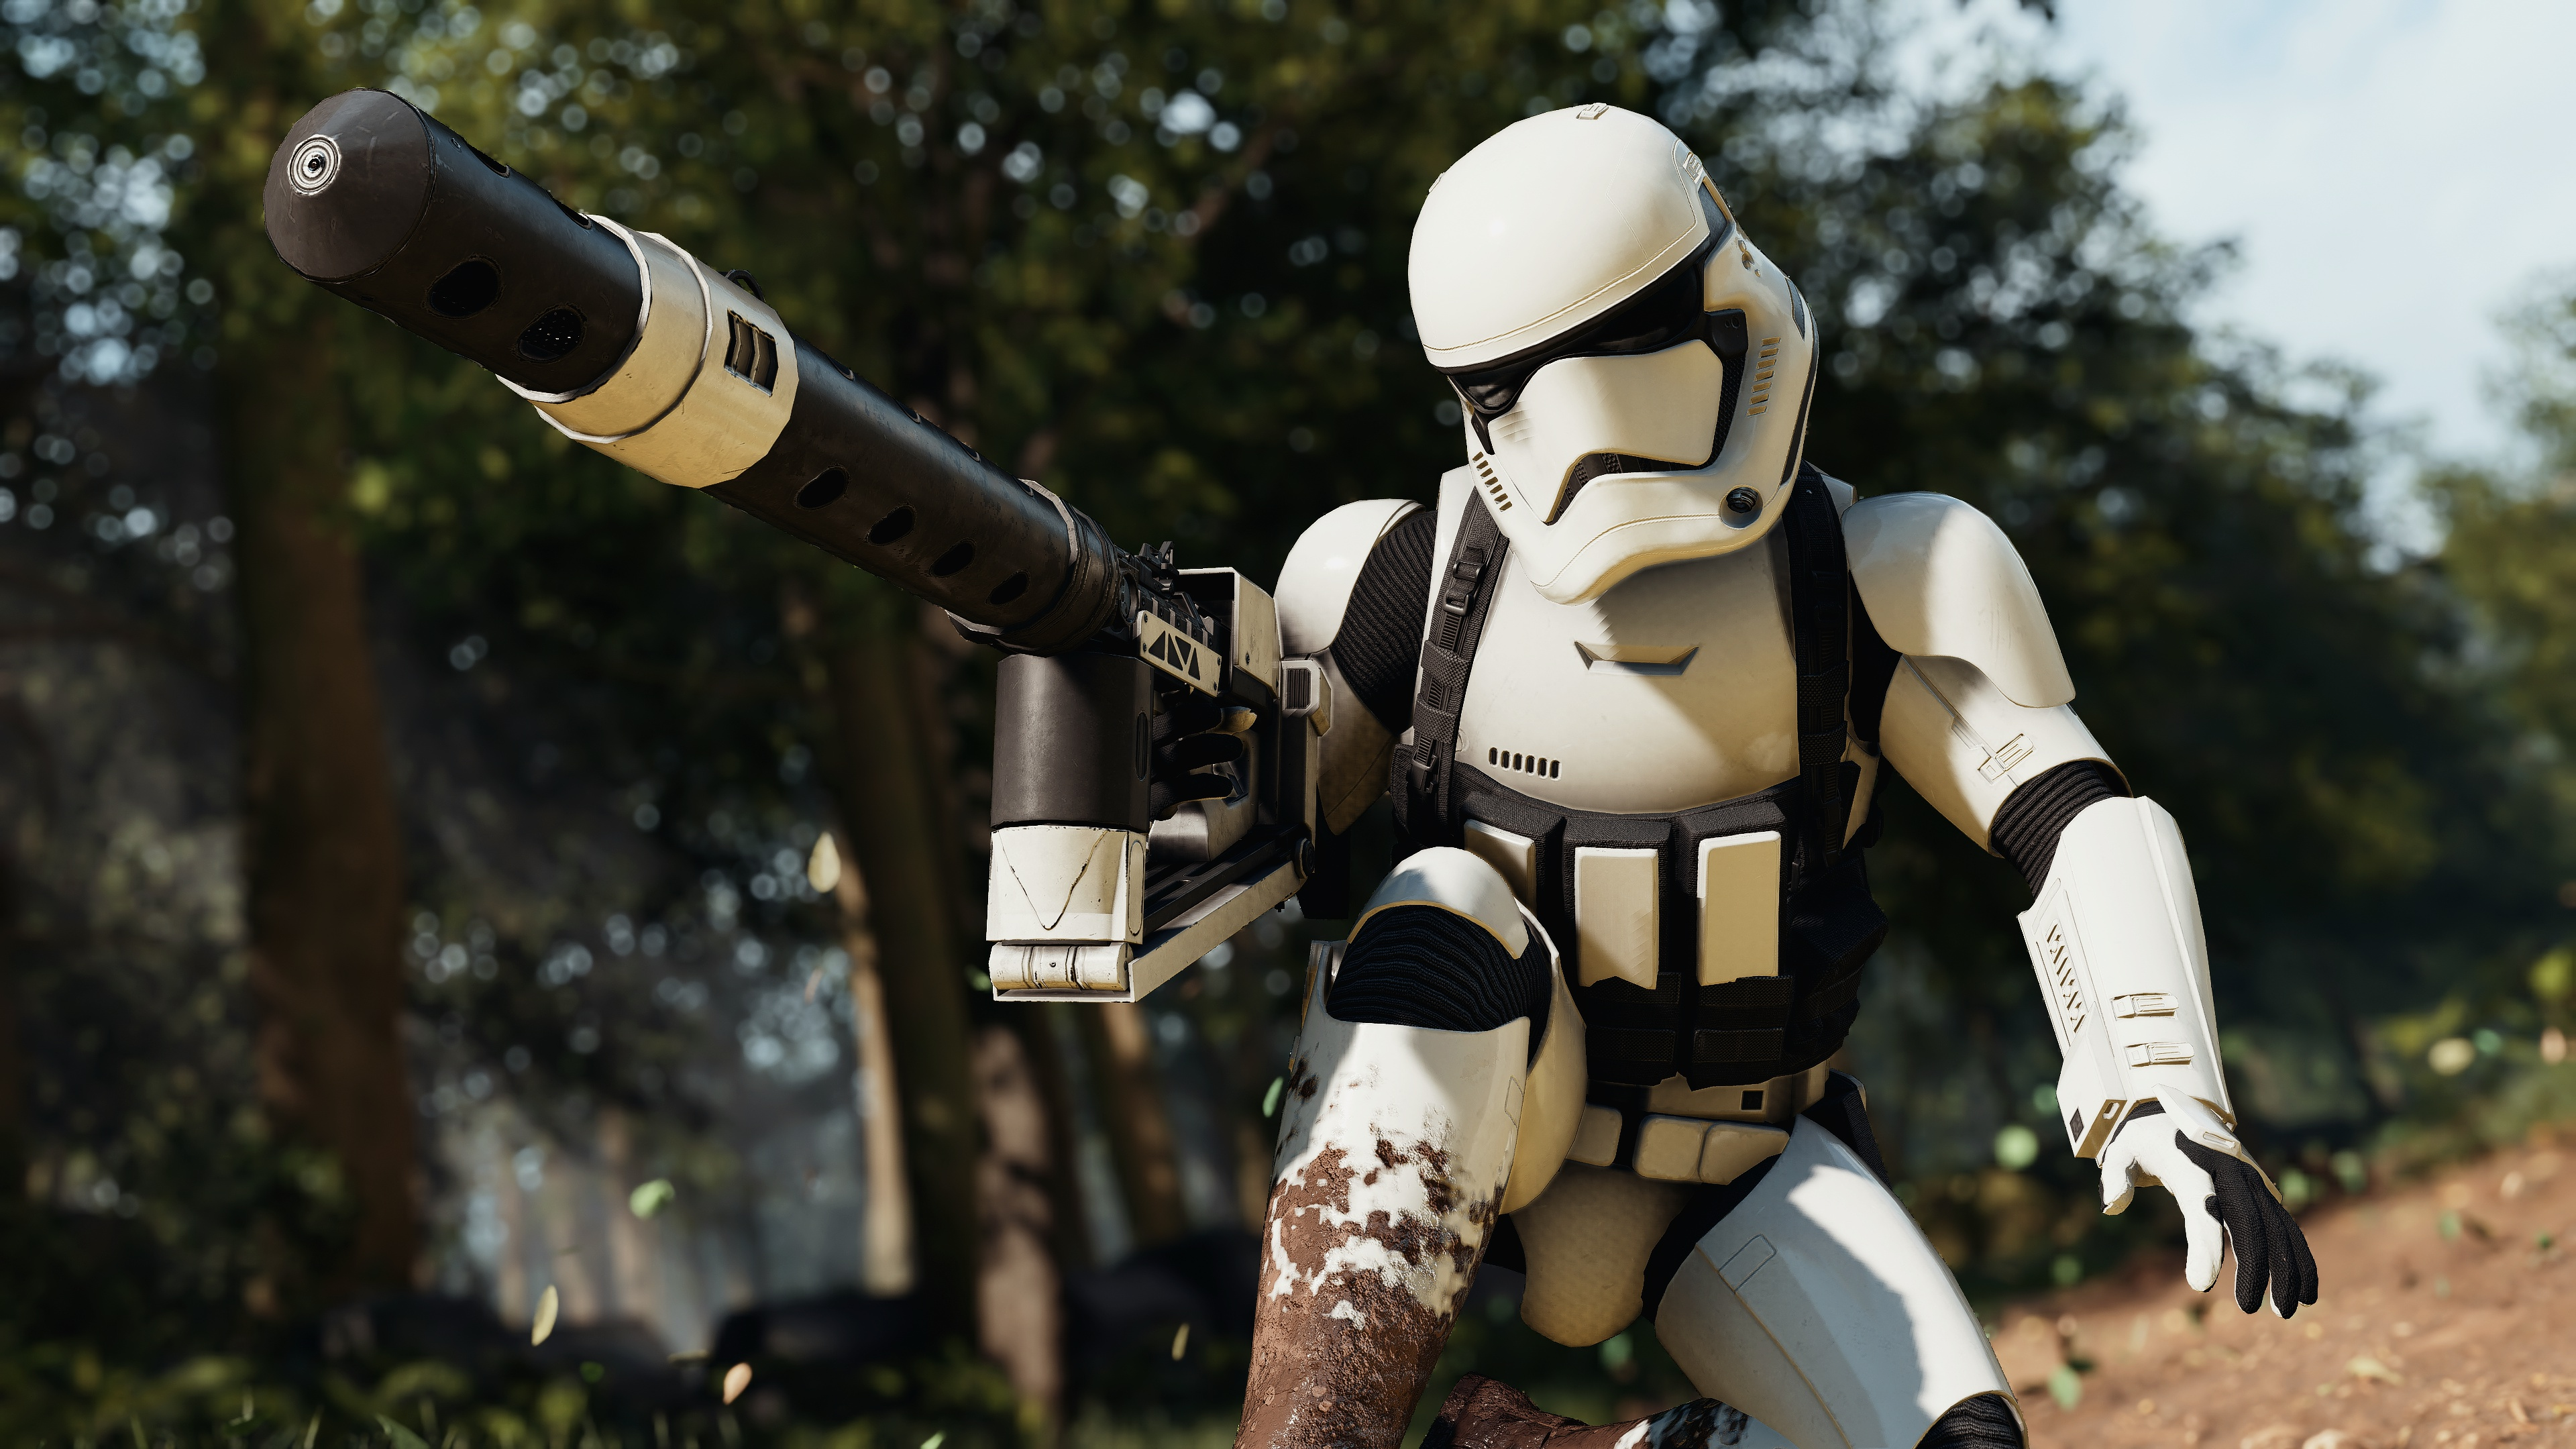 Stormtrooper Star Wars Battlefront 2 4k Hd Games 4k Wallpapers Images Backgrounds Photos And Pictures